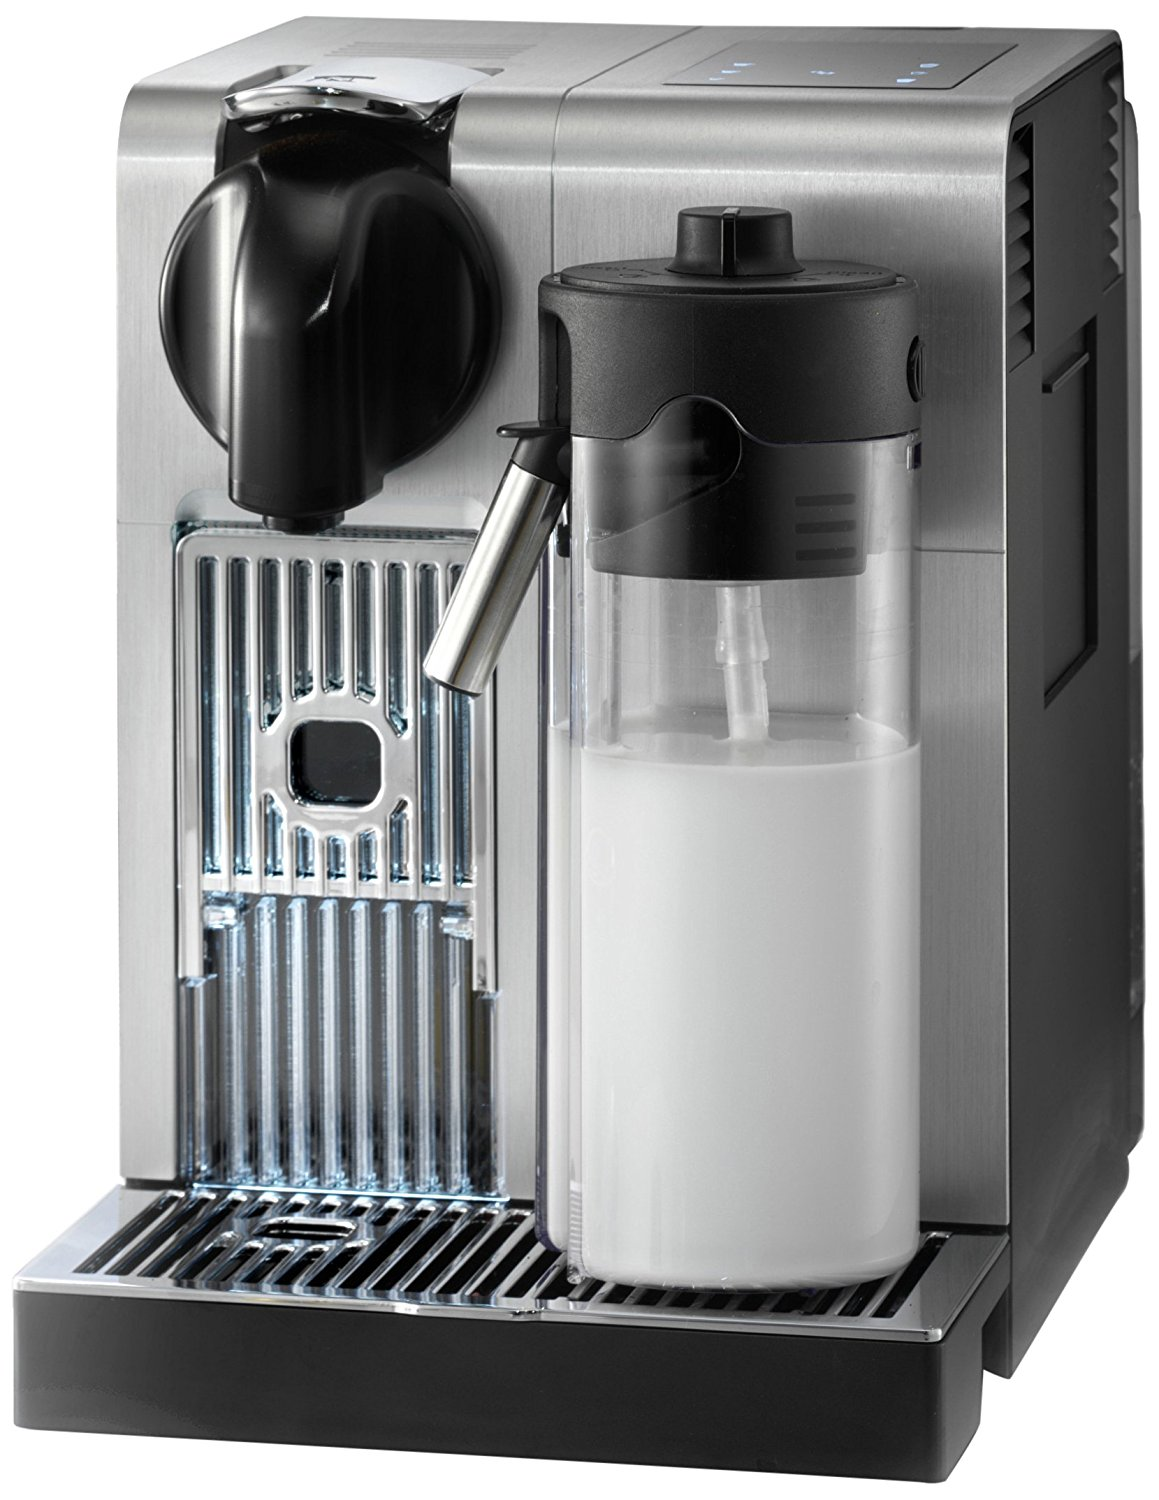 Review of Nespresso Lattissima Pro Coffee Machine